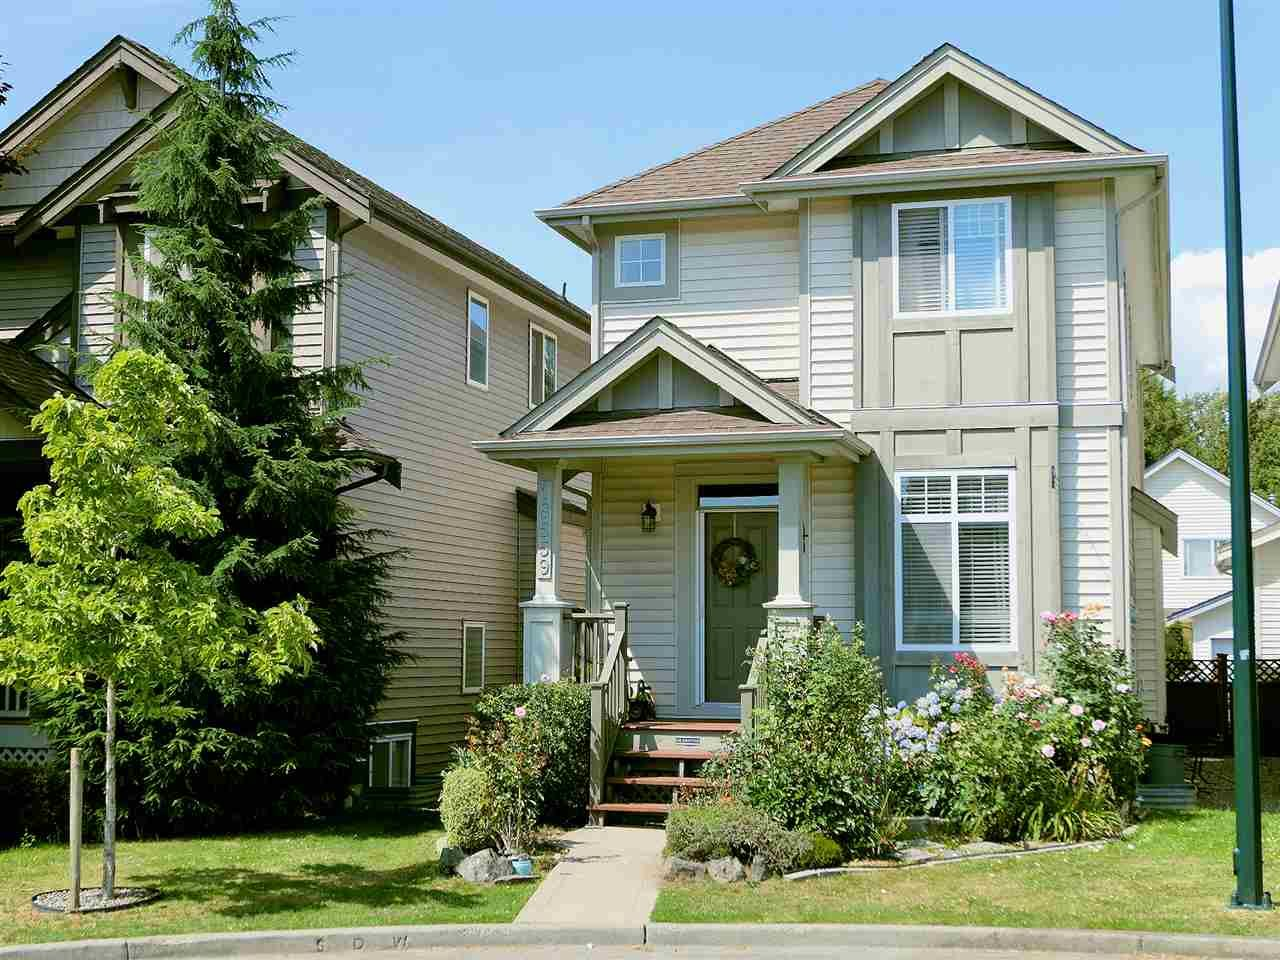 Main Photo: 18559 67A Avenue in Surrey: Cloverdale BC House for sale (Cloverdale)  : MLS®# R2474042